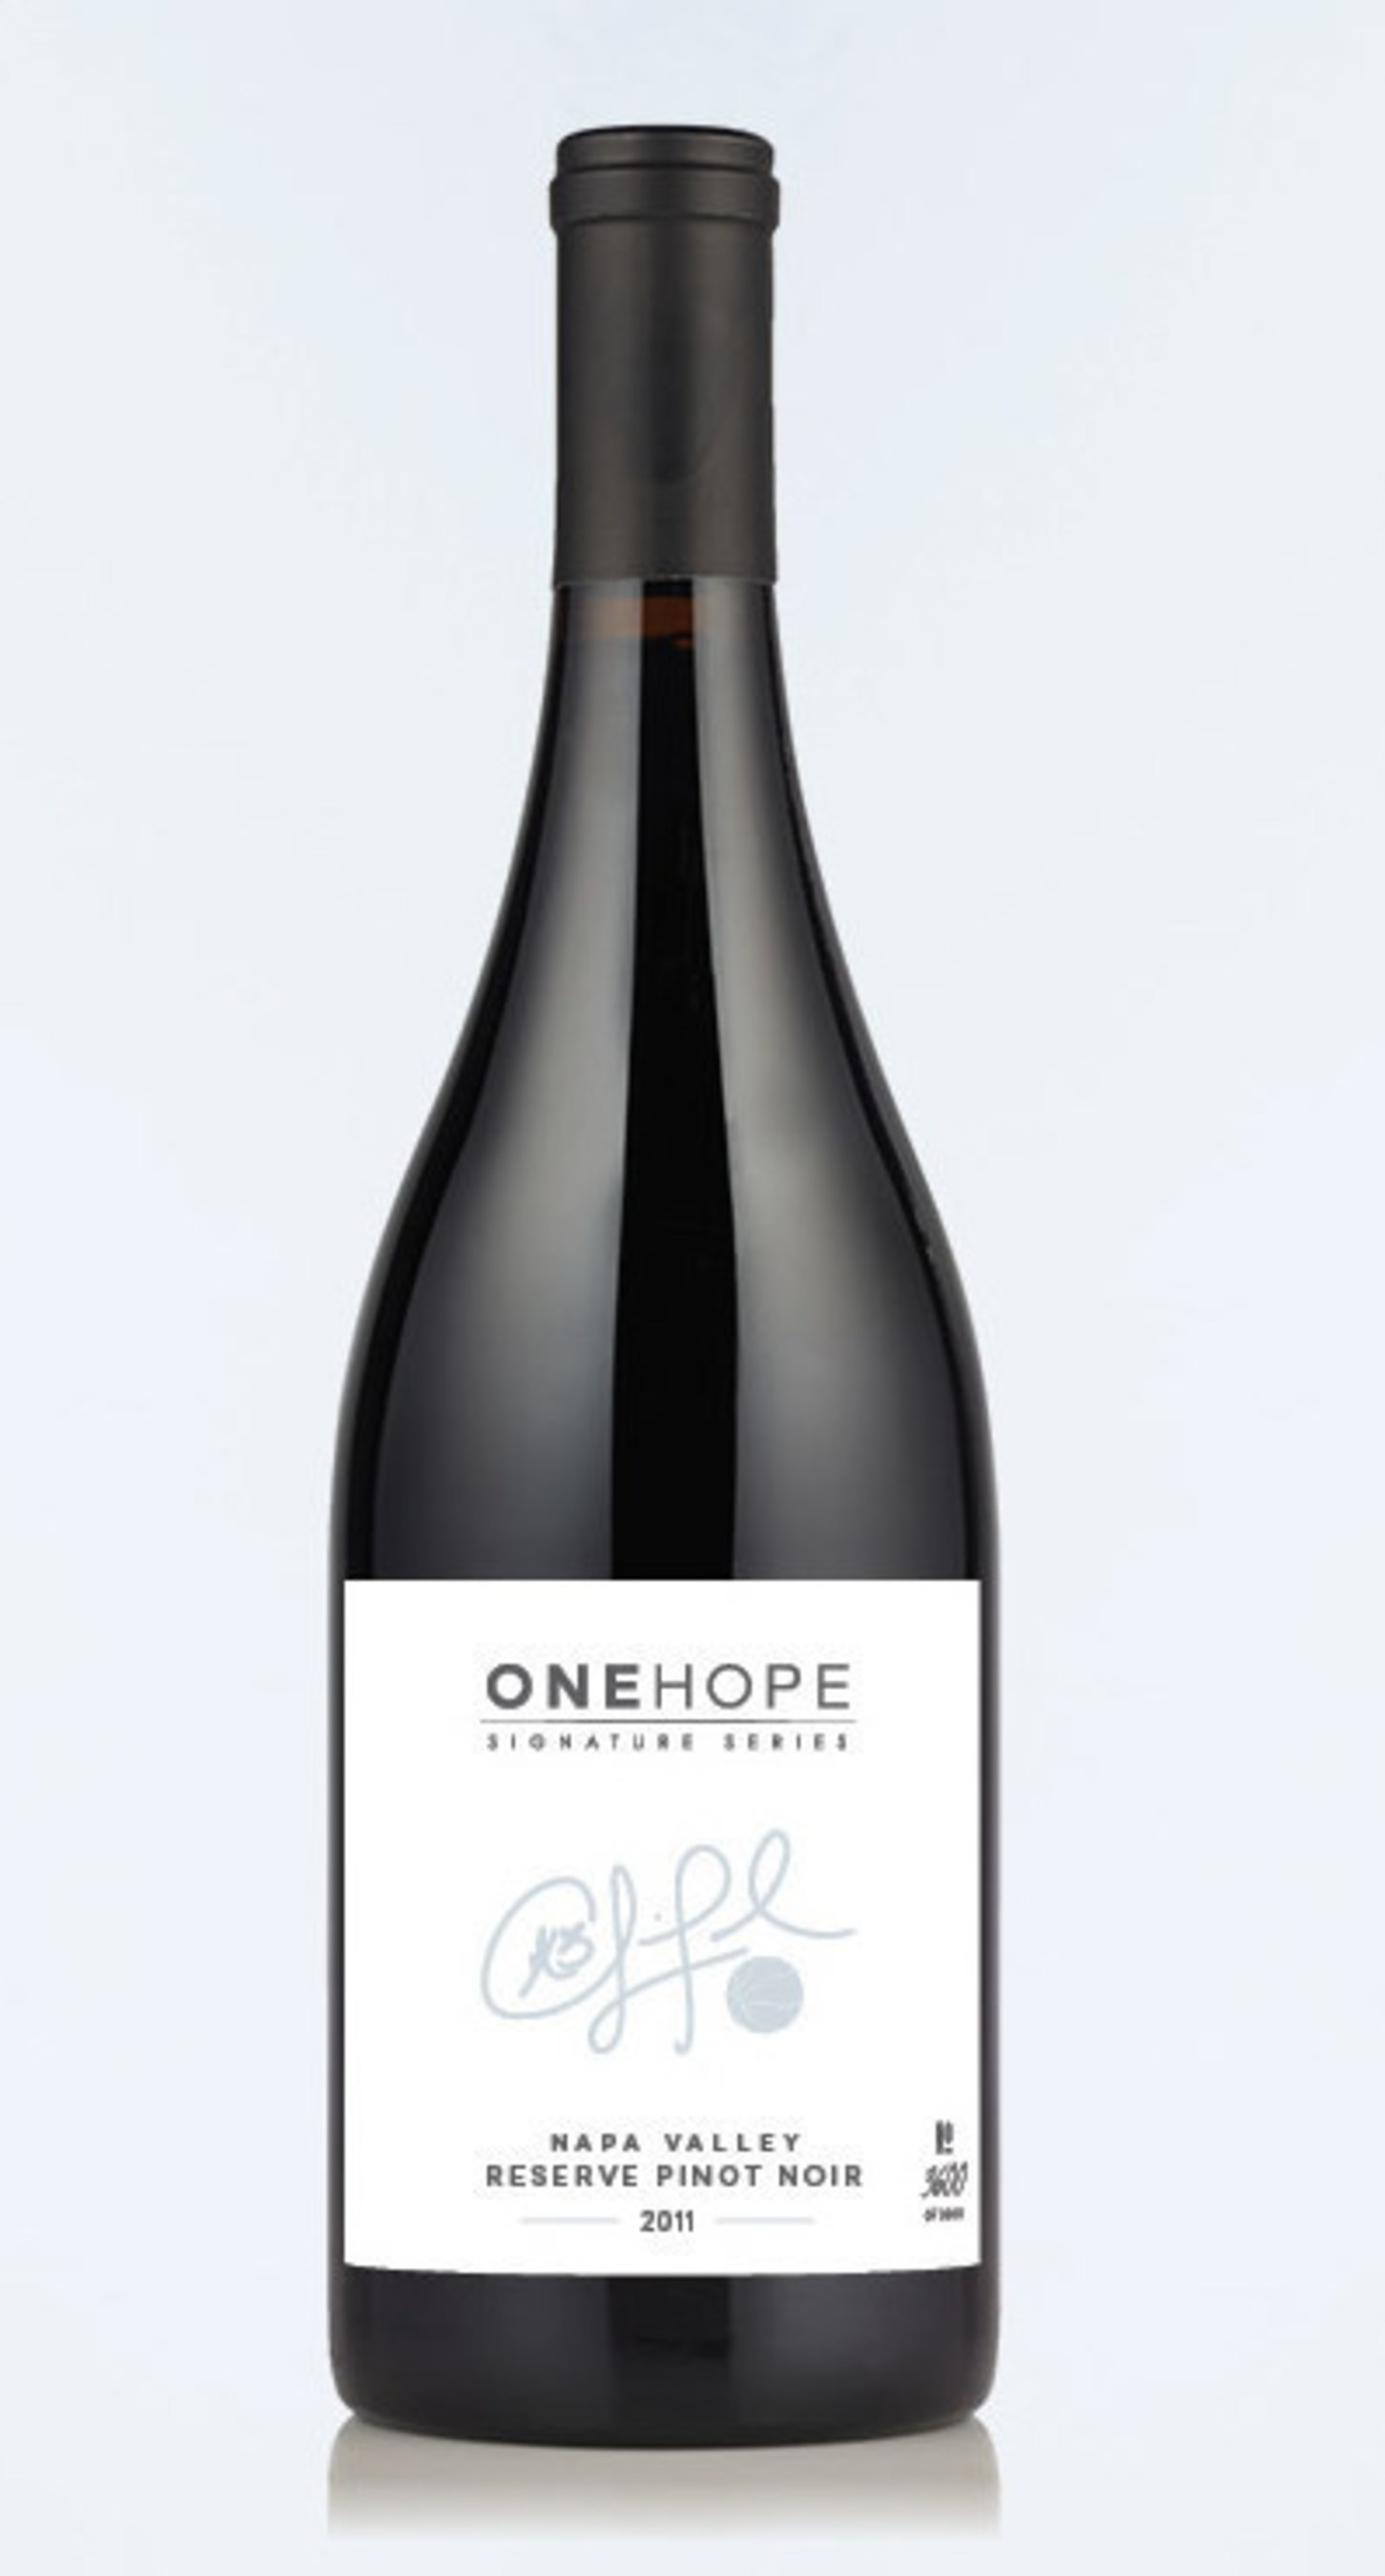 ONEHOPE Wine Collaborates with Chris Paul on Exclusive Signature Series